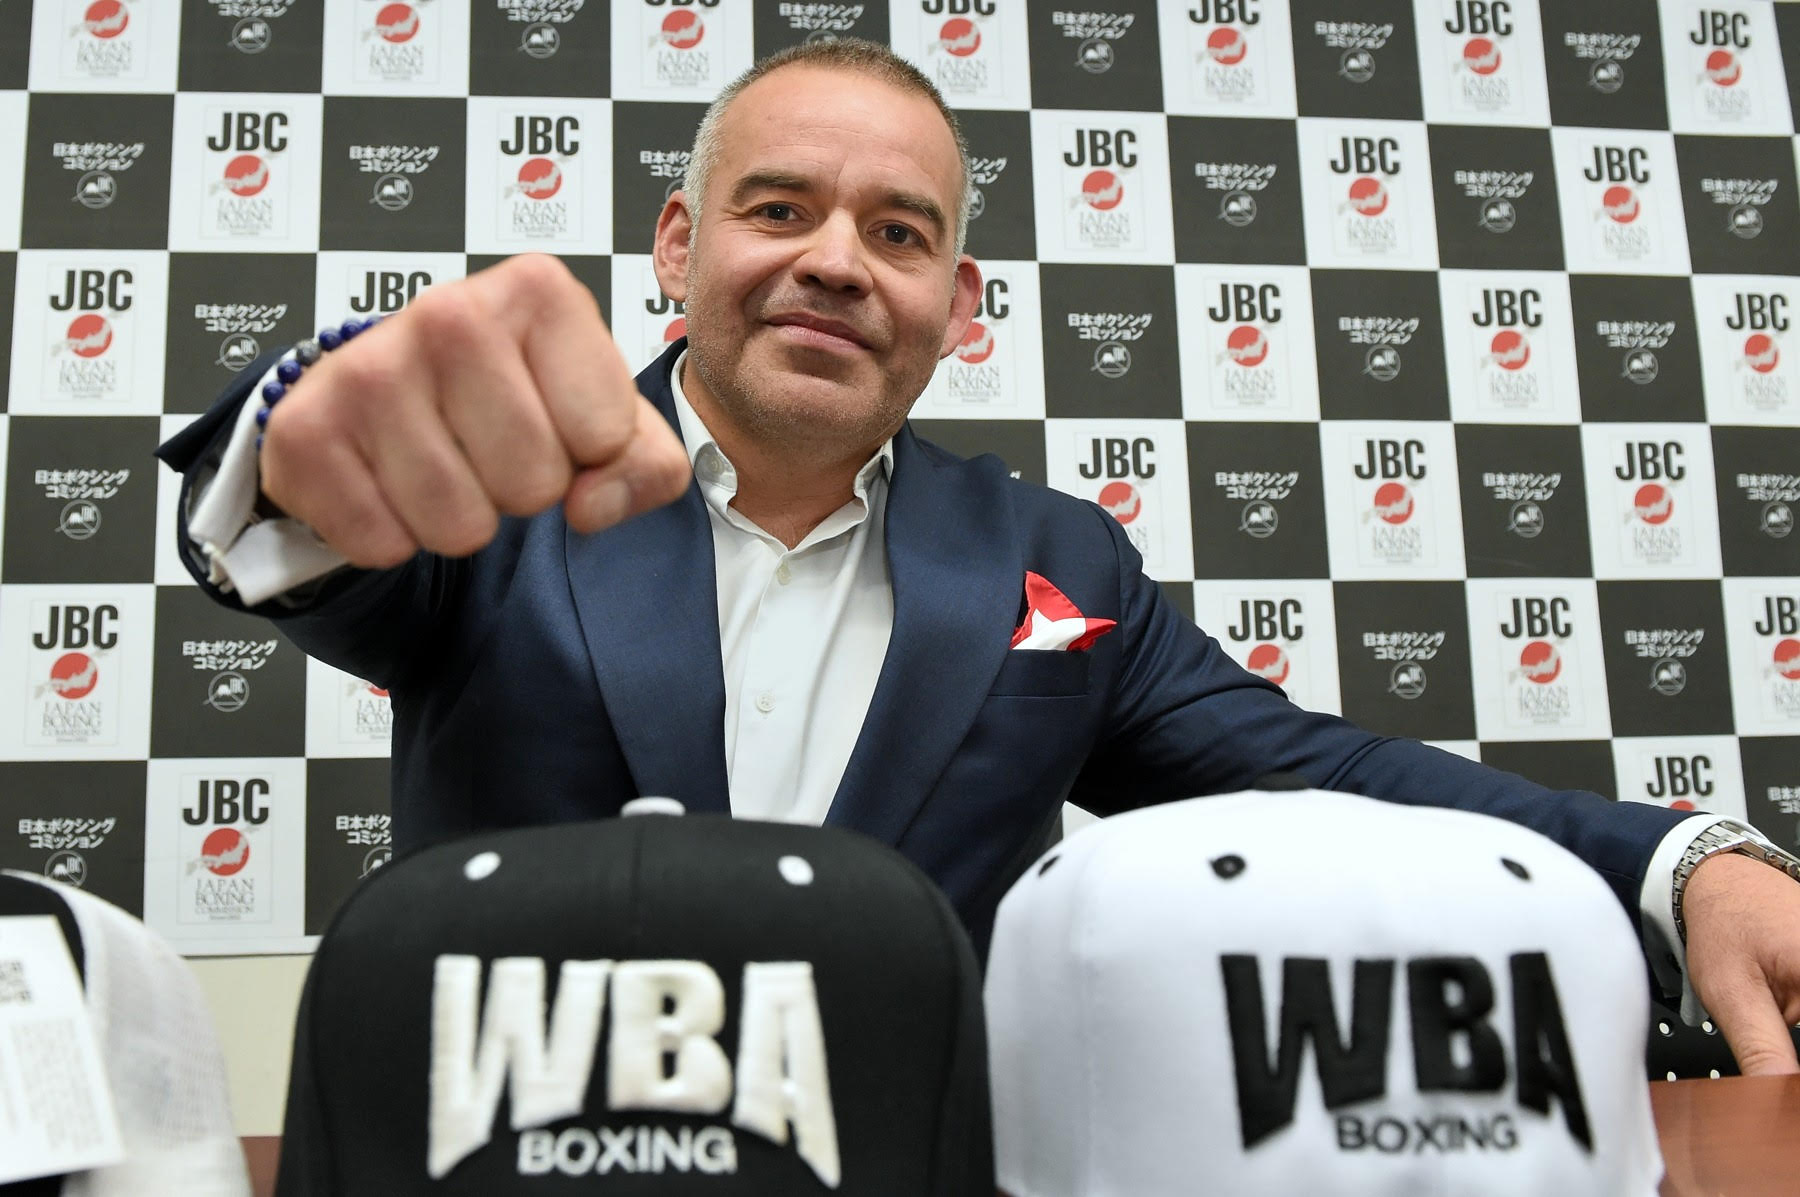 WBA President tests positive for Covid-19